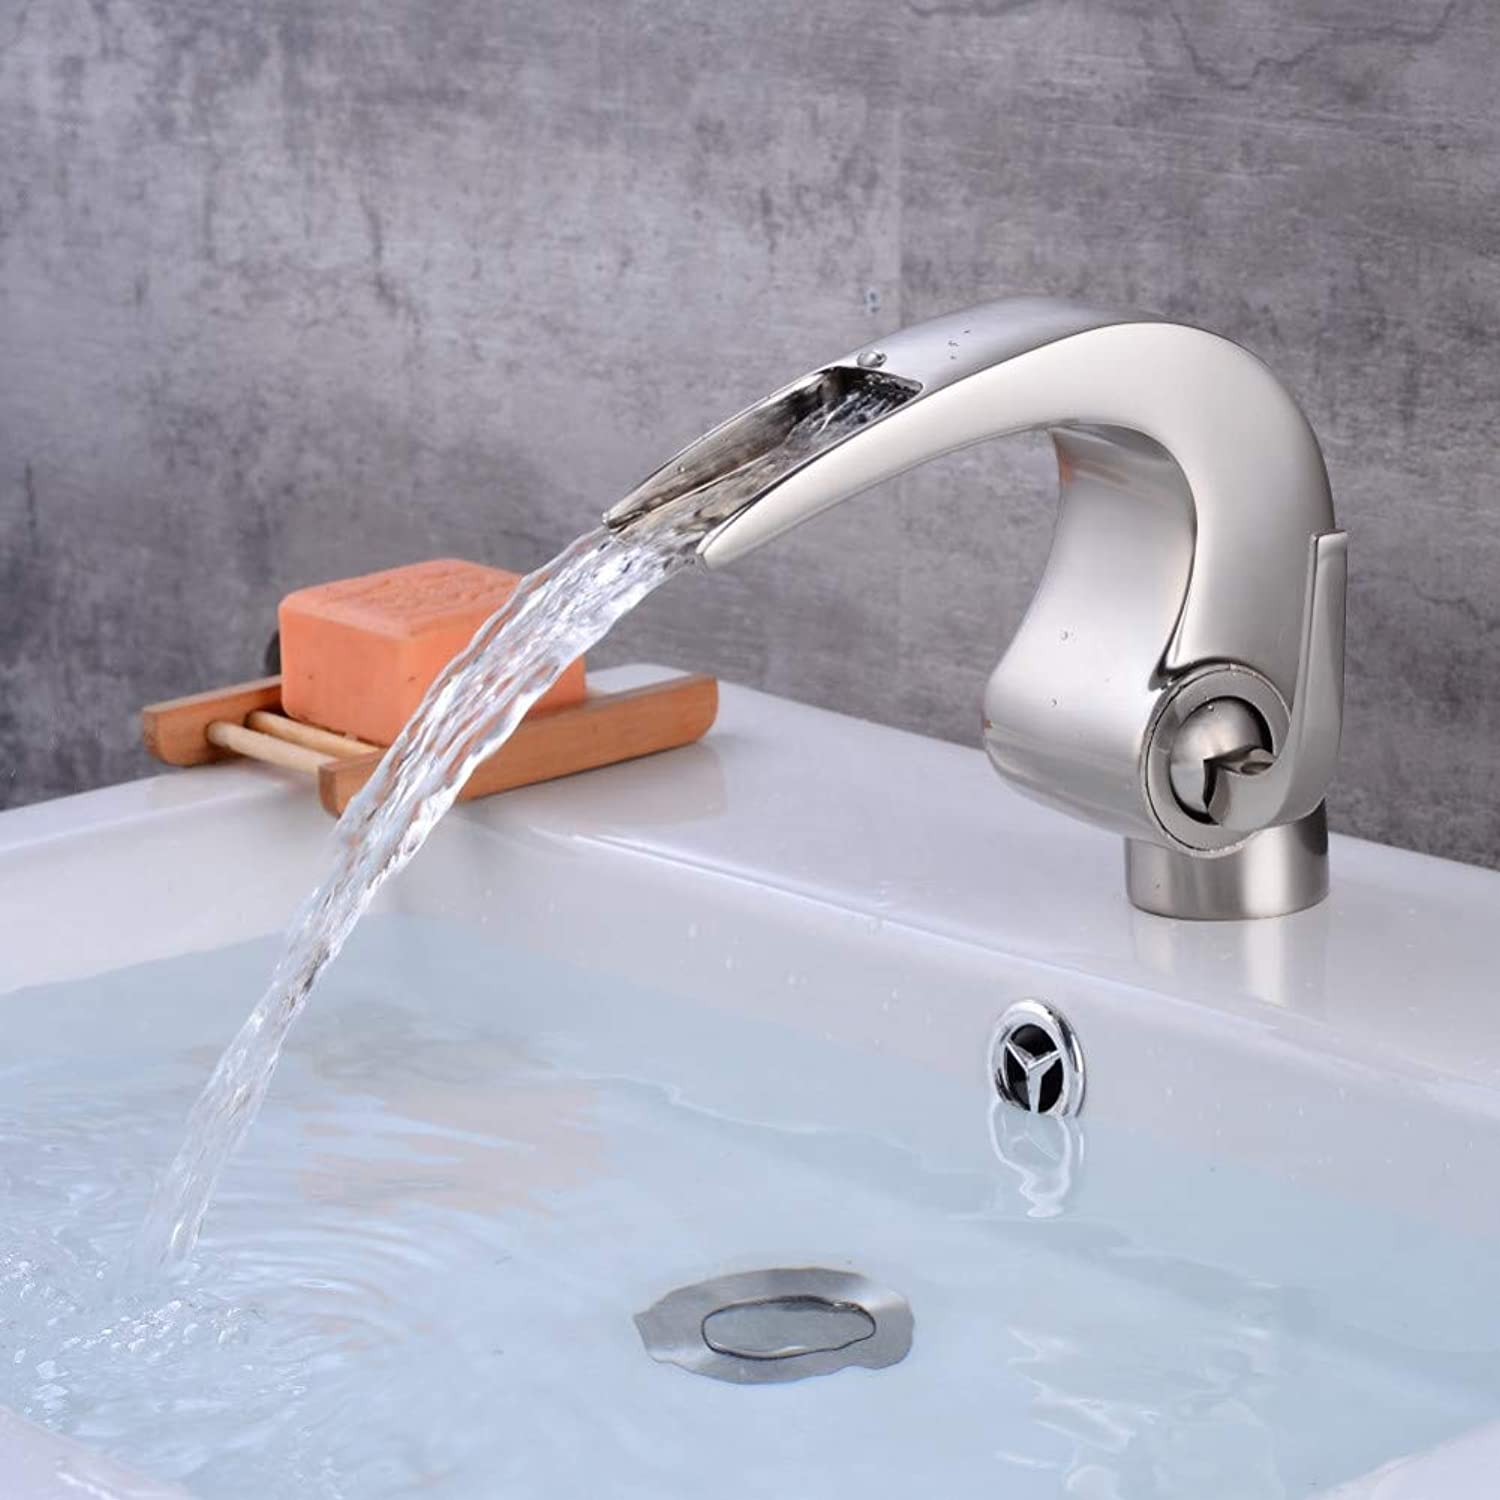 YHSGY Bathroom Sink Taps Nickel Bathroom Waterfall Faucet Crane Nicke Bathroom Basin Faucet Bathroom Basin Mixer Tap with Hot and Cold